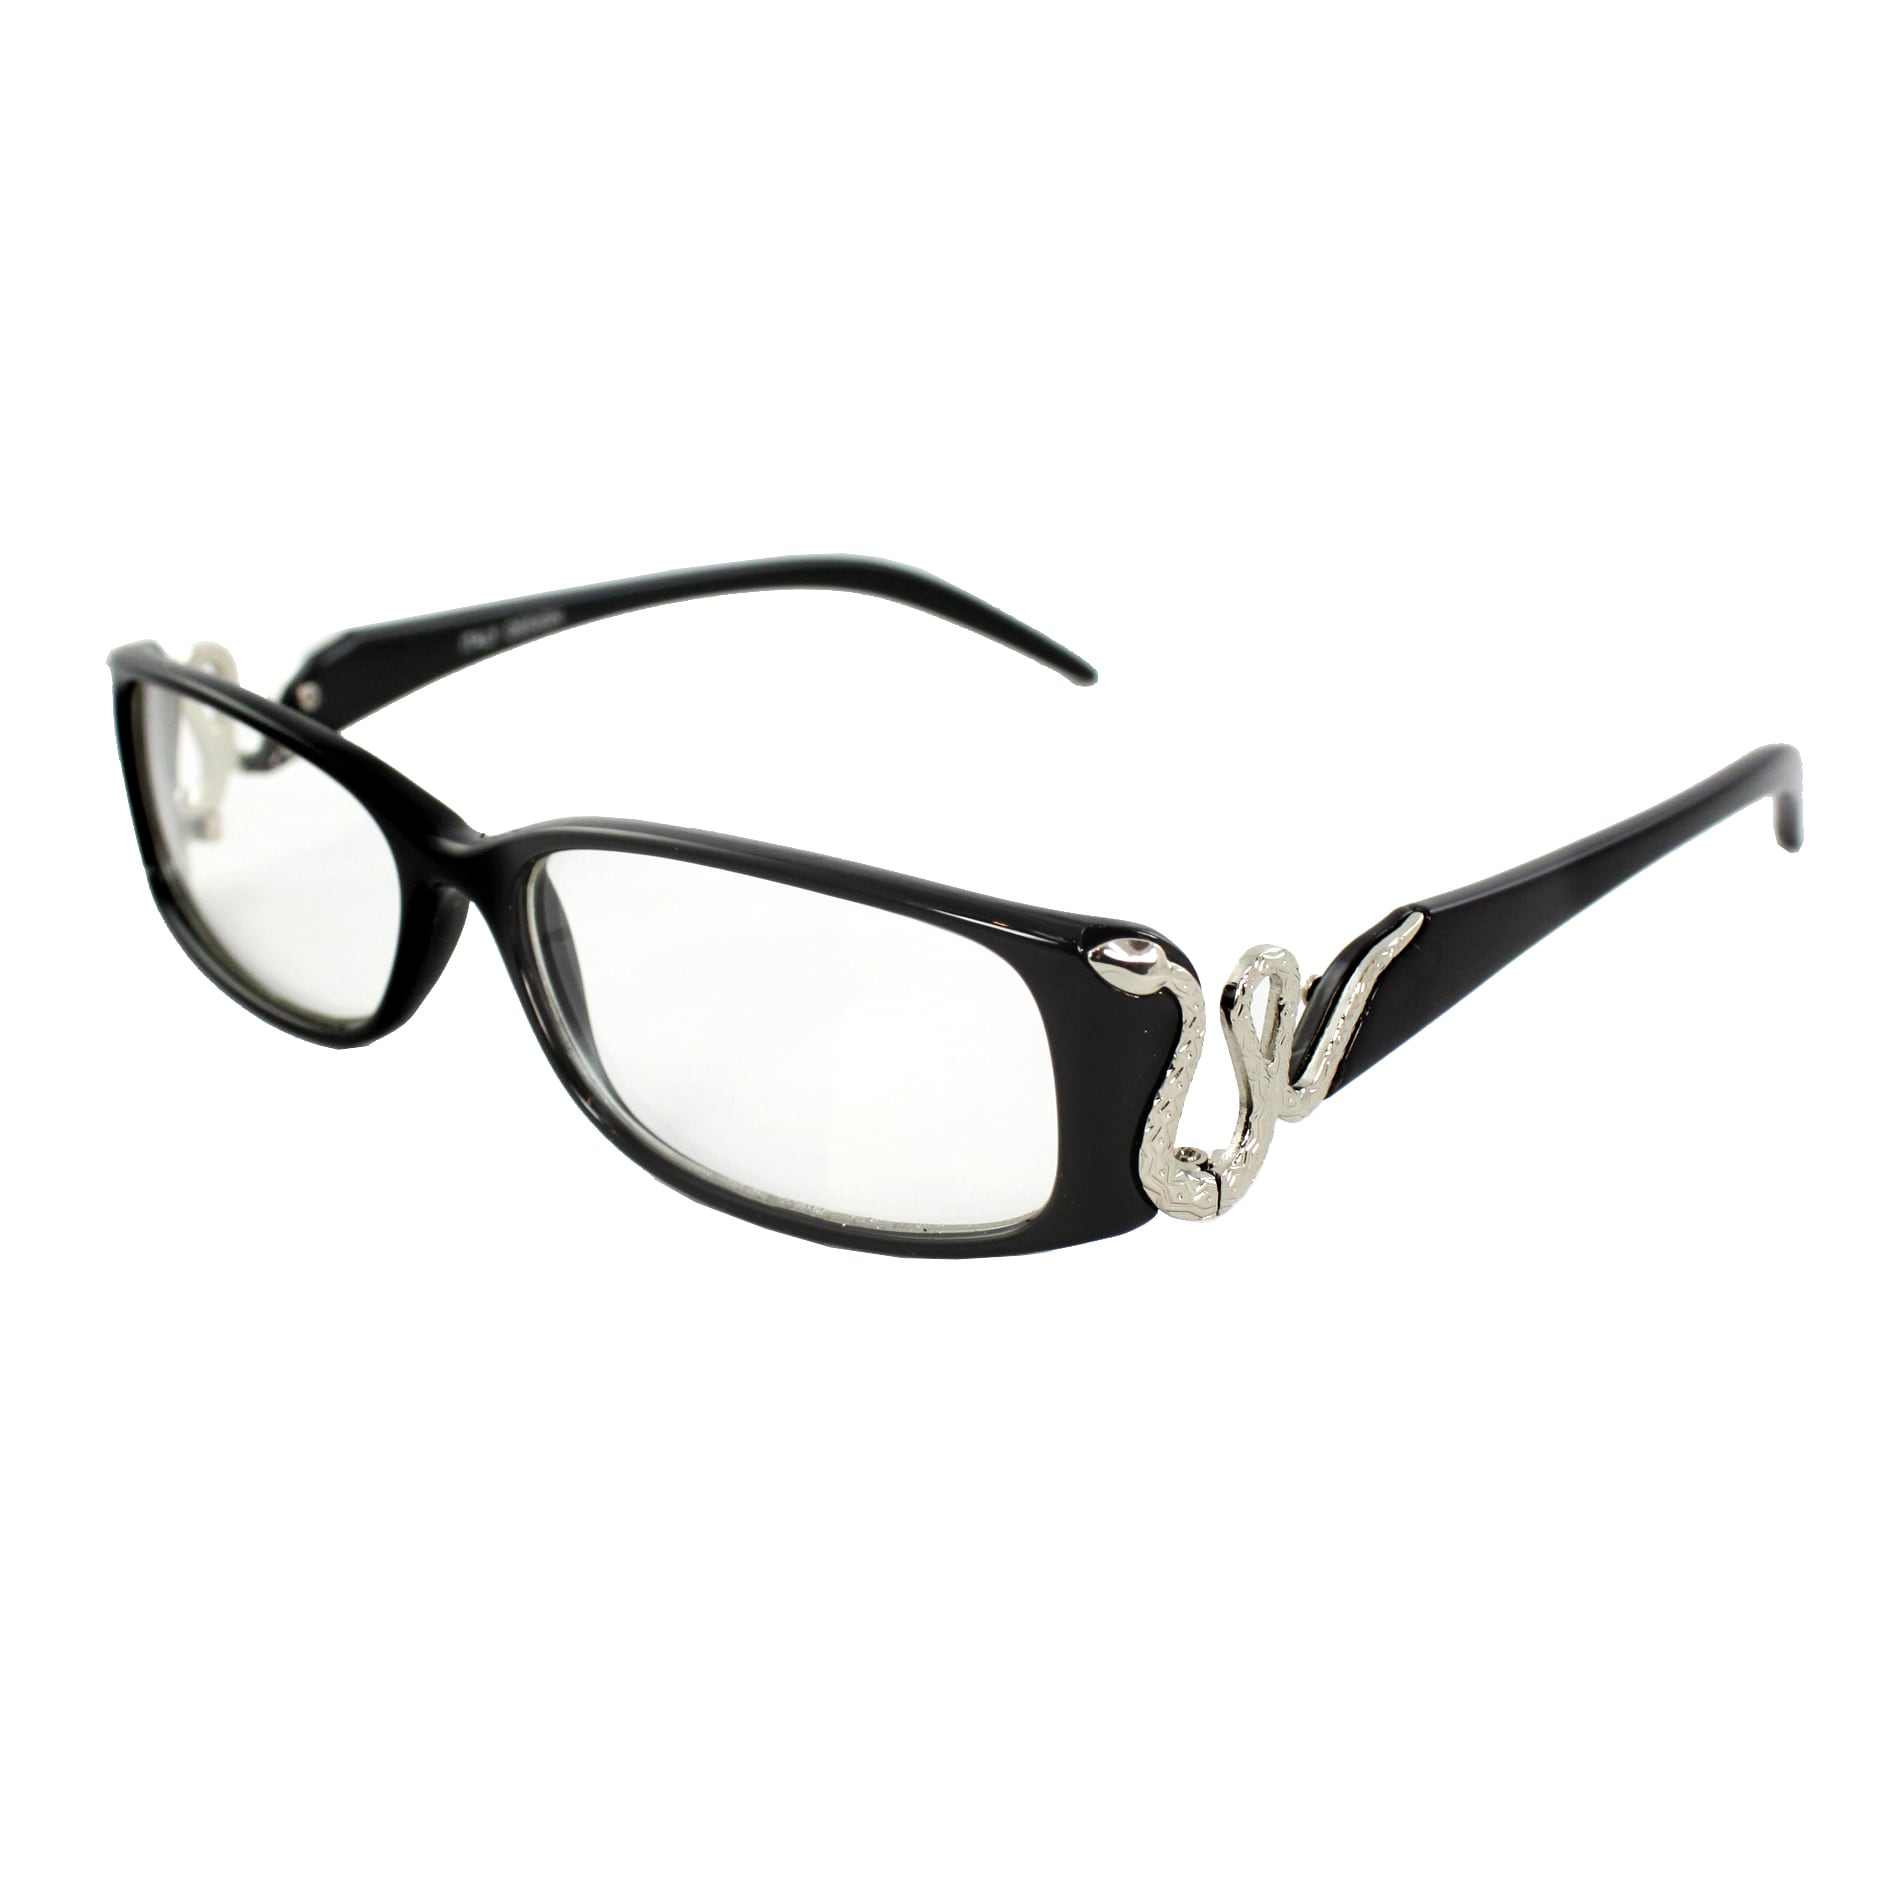 Rectangle Fashion Sunglasses Black Frame Clear Lenses in Stunning Snake Design (can use as optical frame)